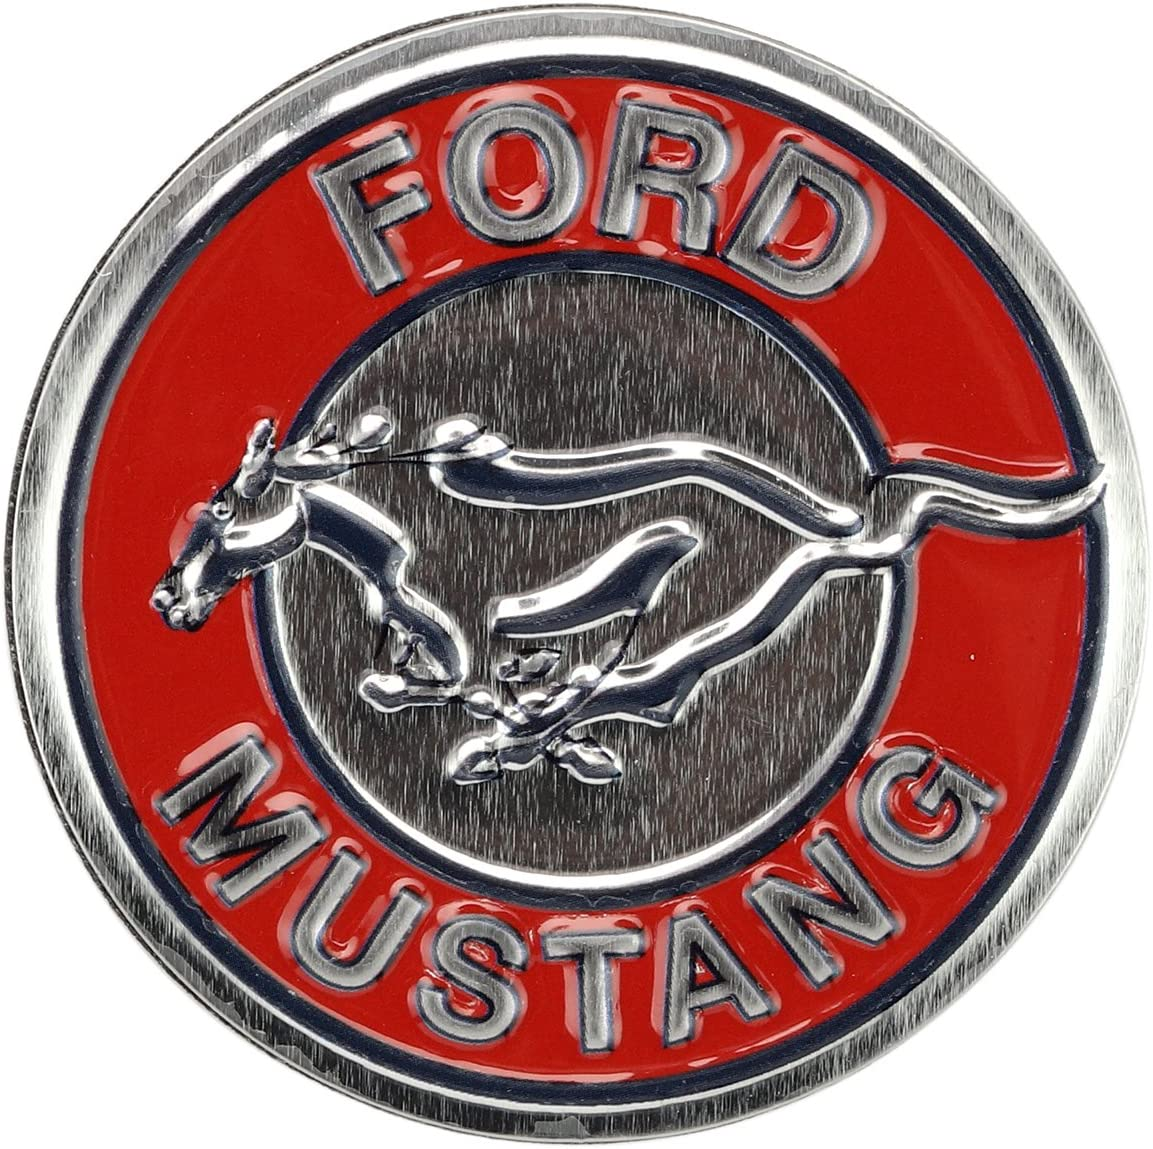 Open Road Brands Ford Red and Silver High Gloss Mustang Tin Metal Magnet - an Officially Licensed Product Great Small Gift and Addition to Add What You Love to Your Home/Garage Decor